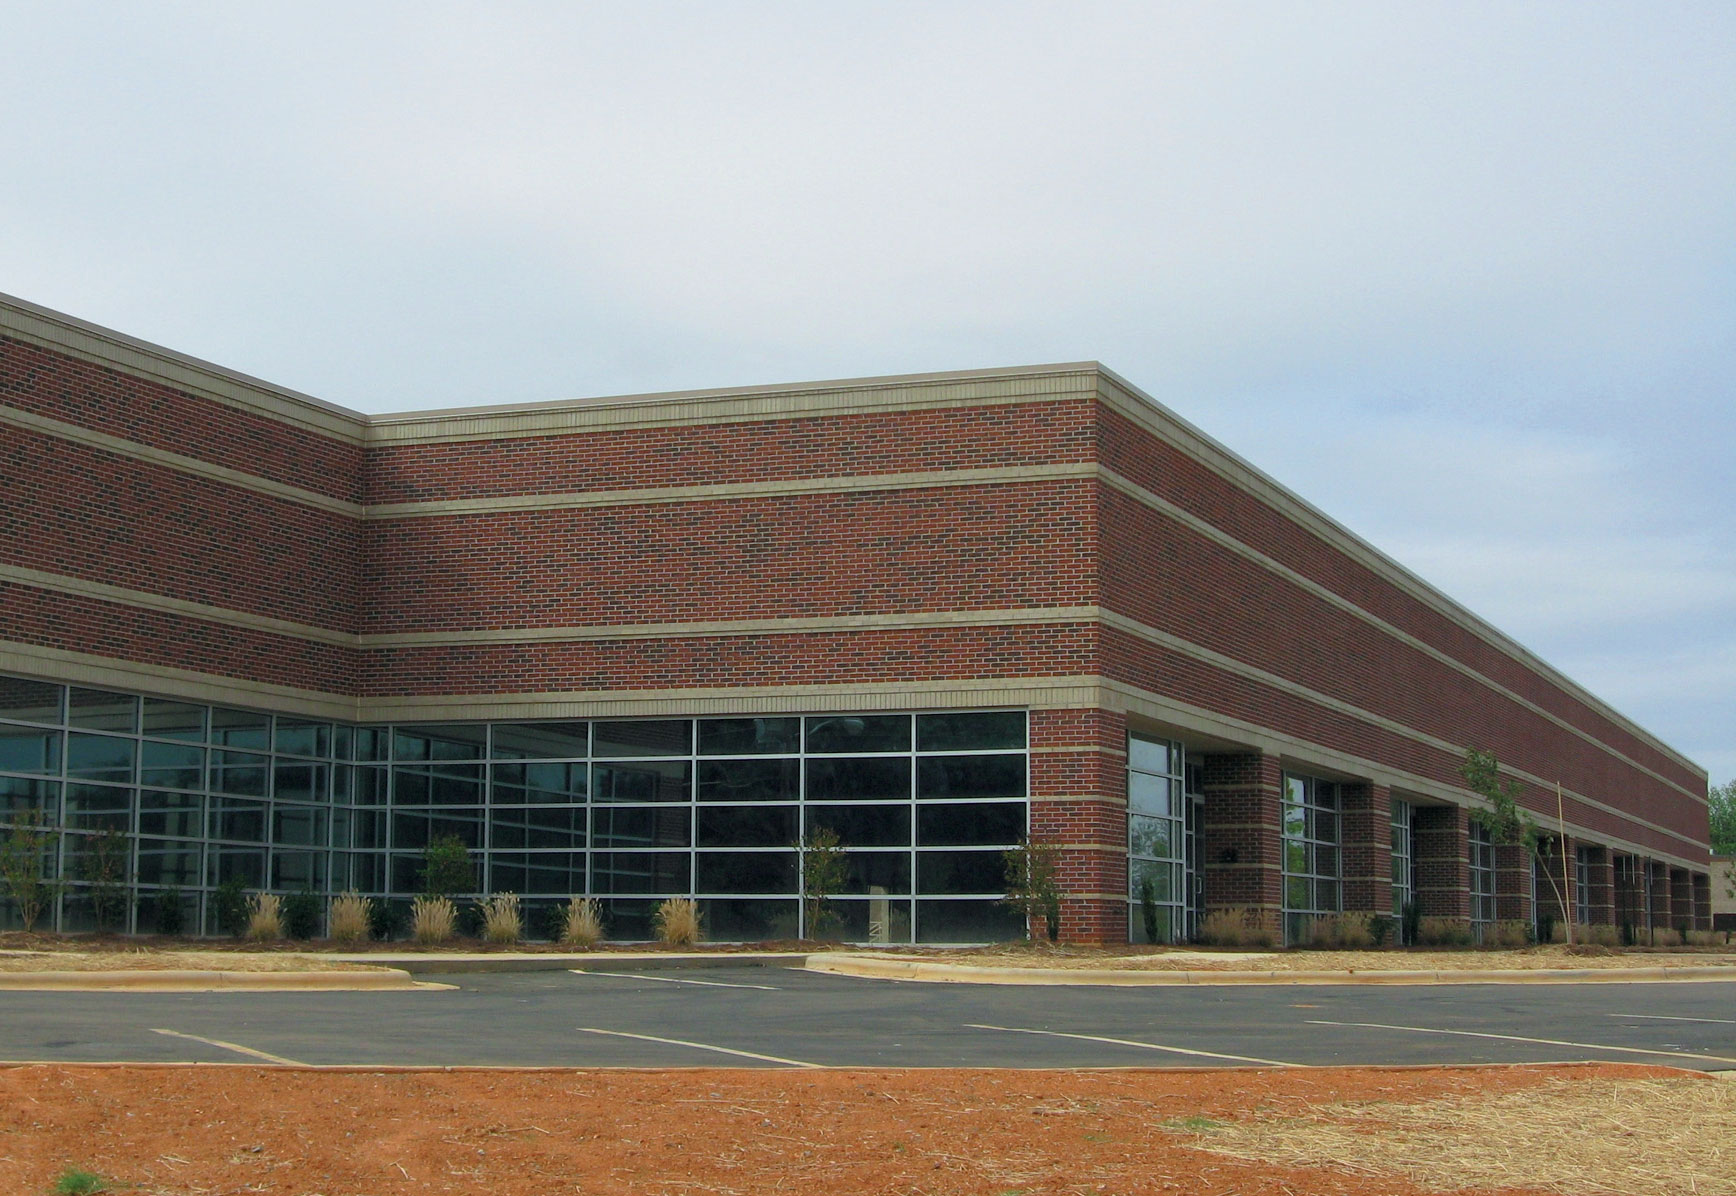 CAROLINA CENTRAL INDUSTRIAL CENTER